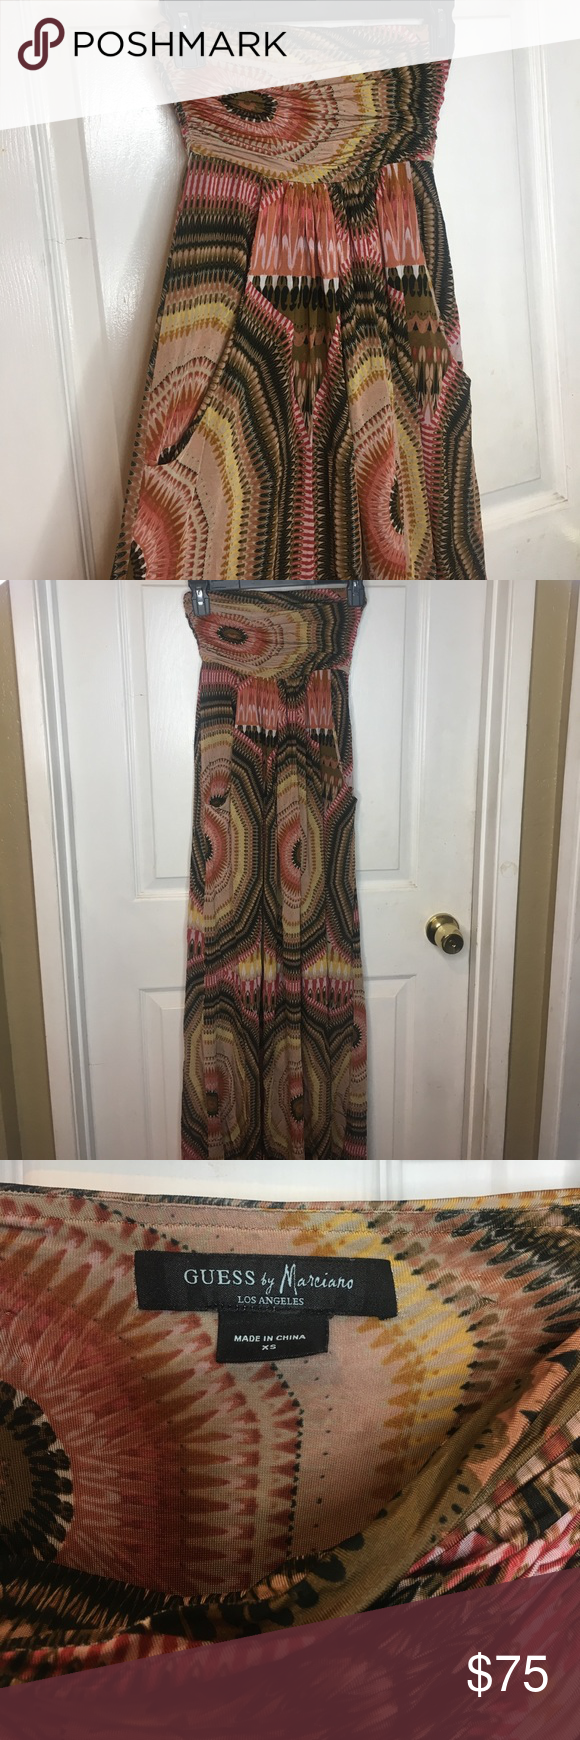 GUESS by Marciano strapless maxi dress w/ pockets GUESS by Marciano strapless long maxi dress with pockets Guess by Marciano Dresses Maxi